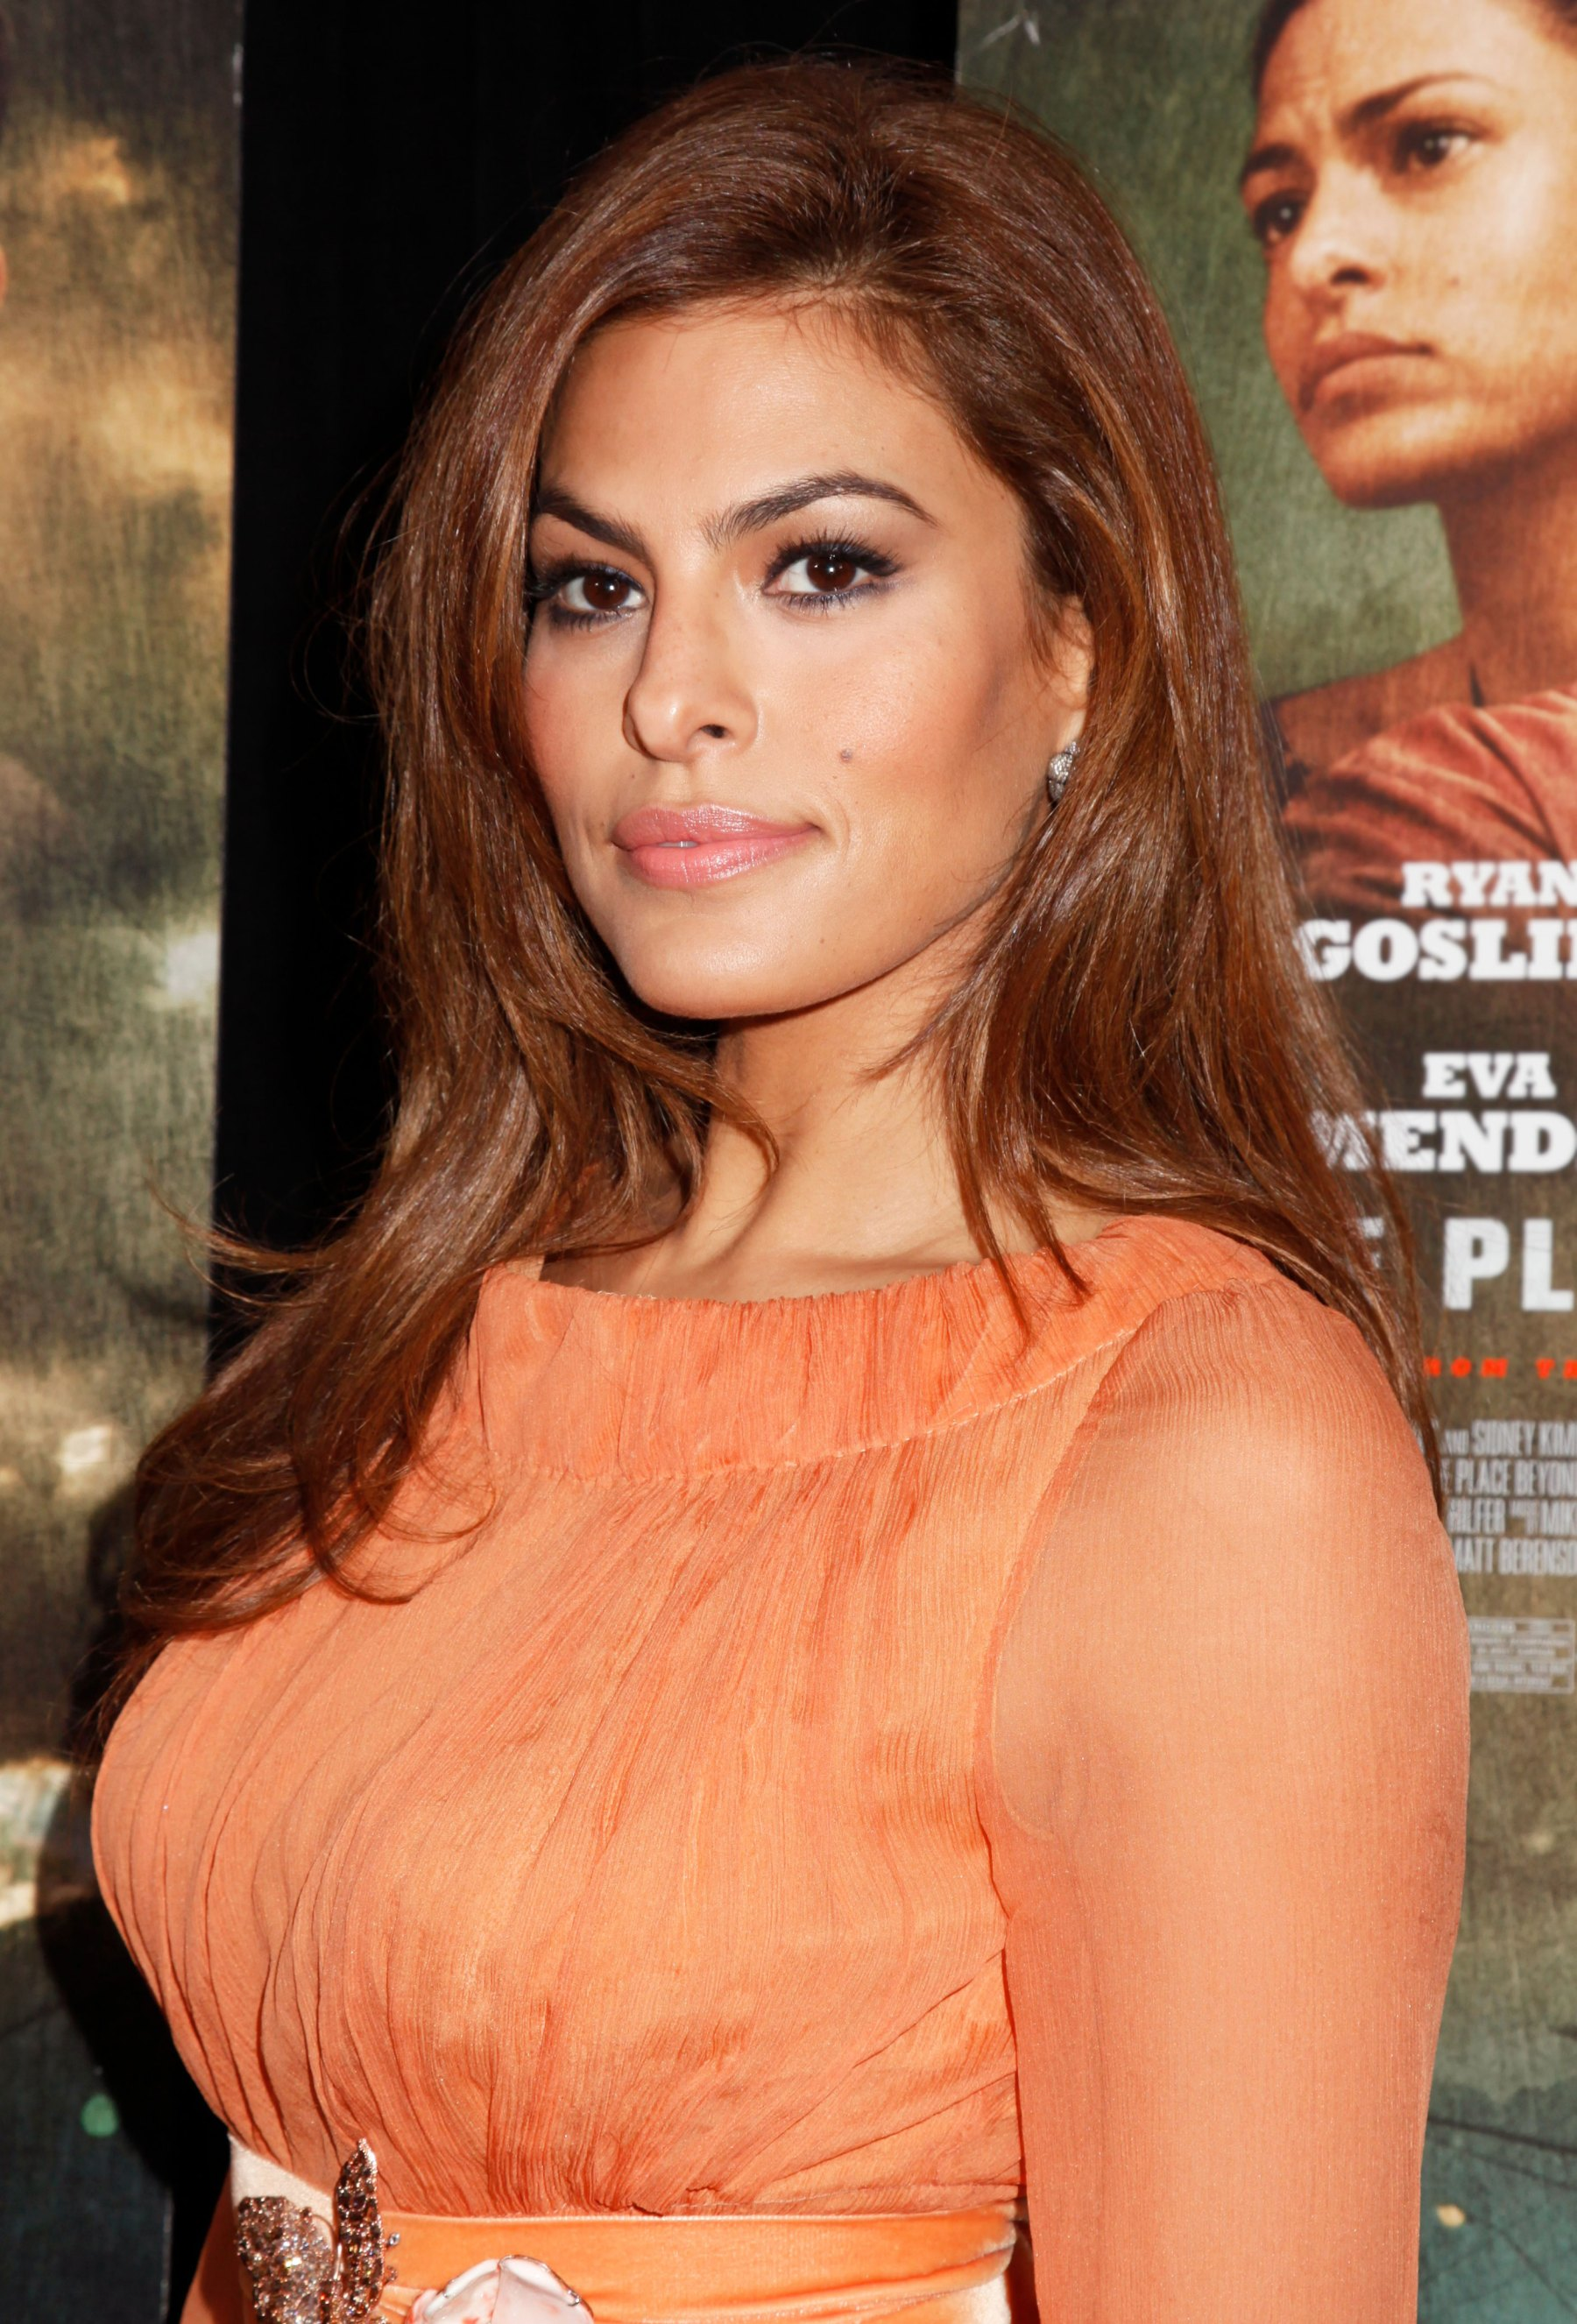 Eva Mendes Wishes She Still Had Her Weird Face From 20